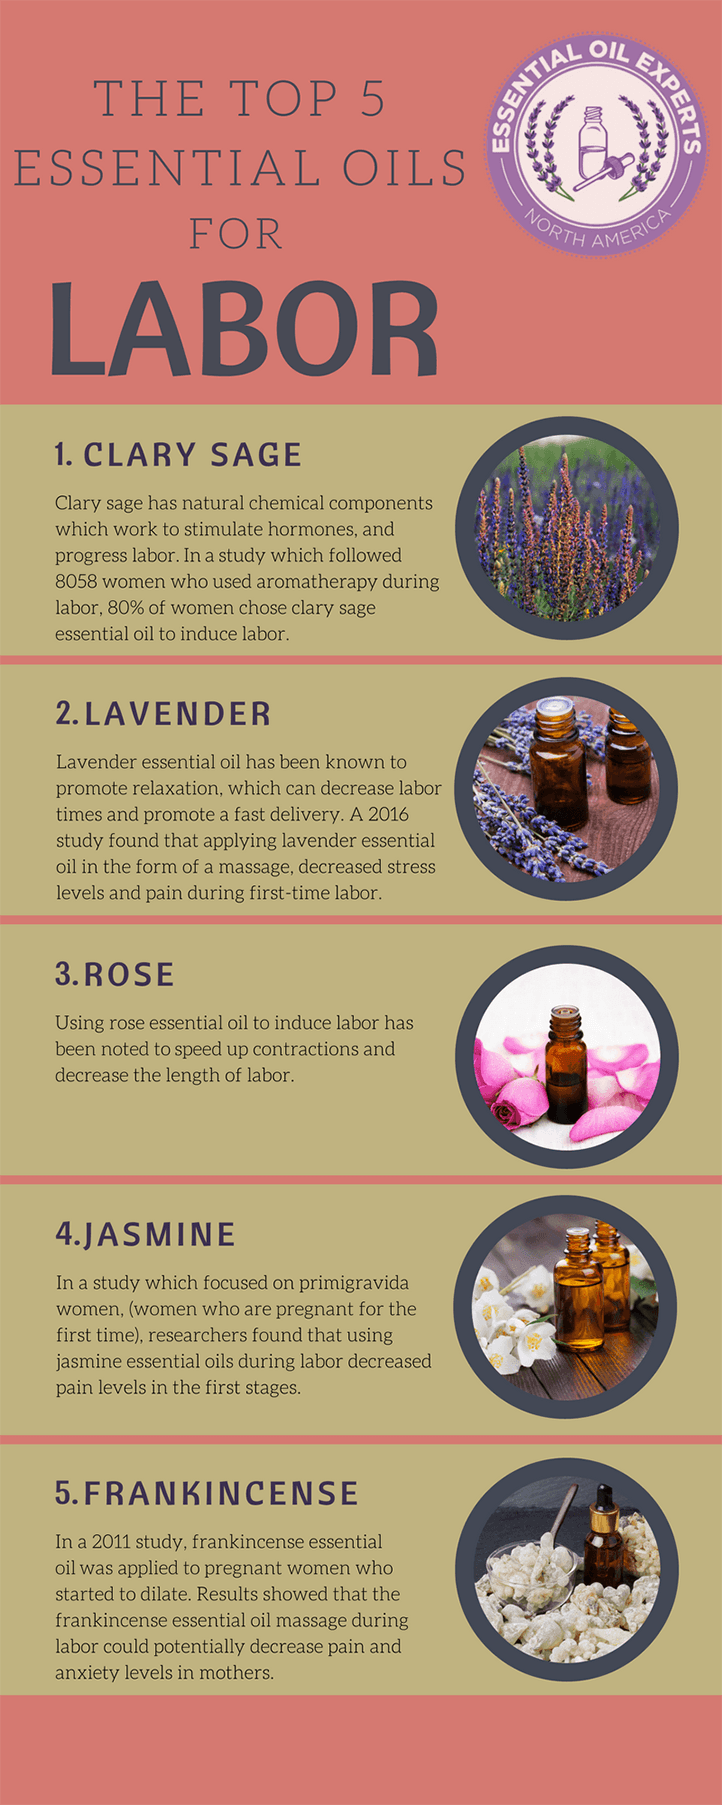 Best essential oils for labor induction including clary sage labor recipe for pain relief during labor.